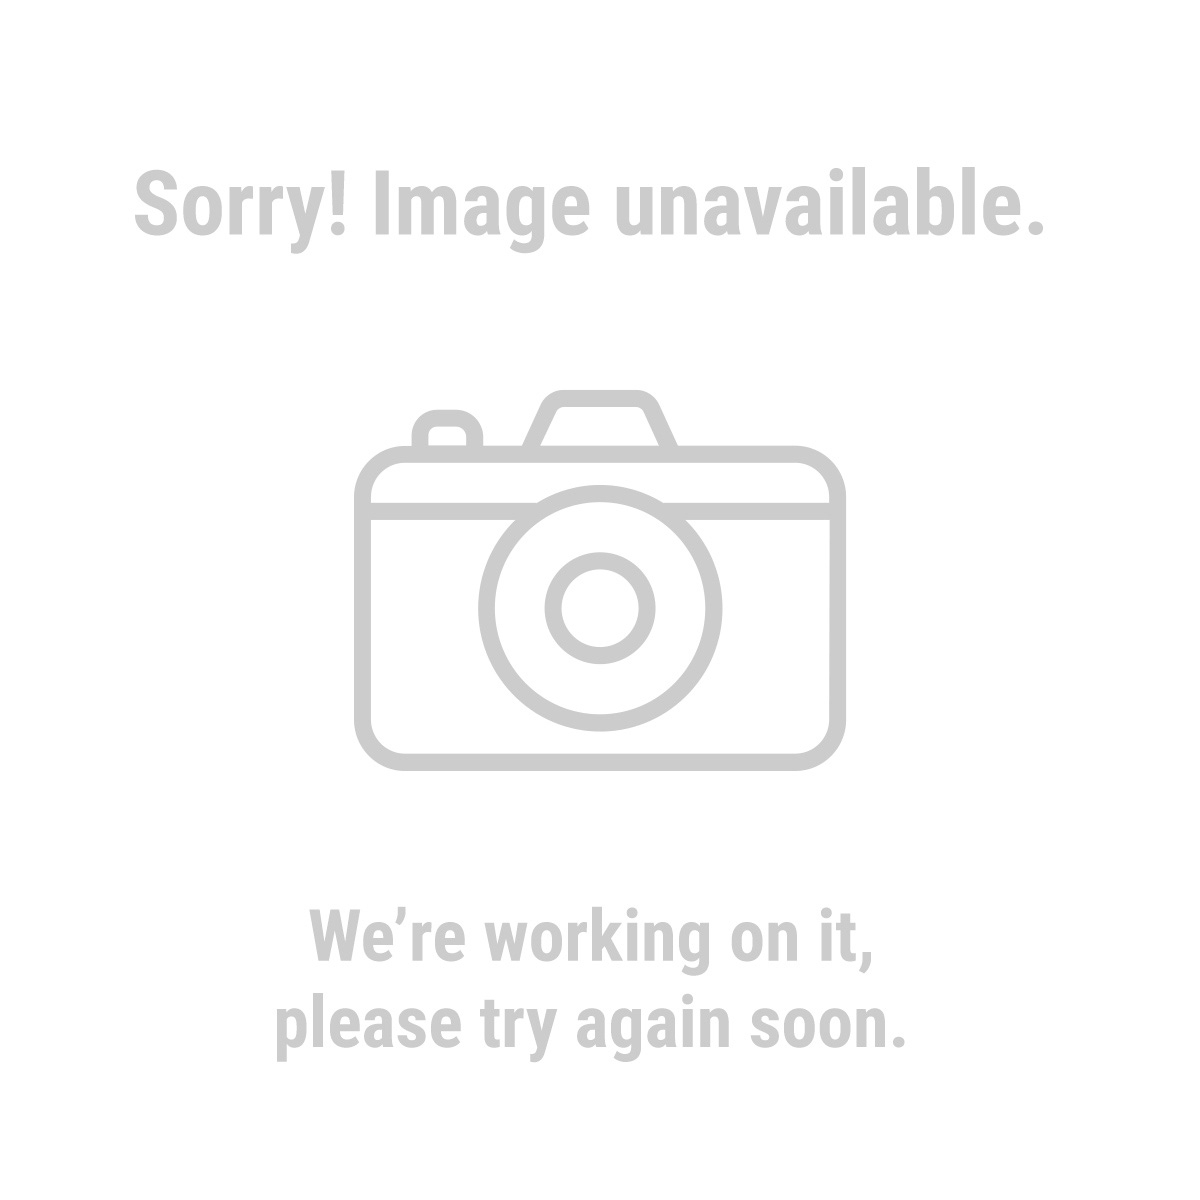 """Central Pneumatic Contractor Series 90479 3-1/4"""" x 10 Gauge Nails, Box of 2000"""